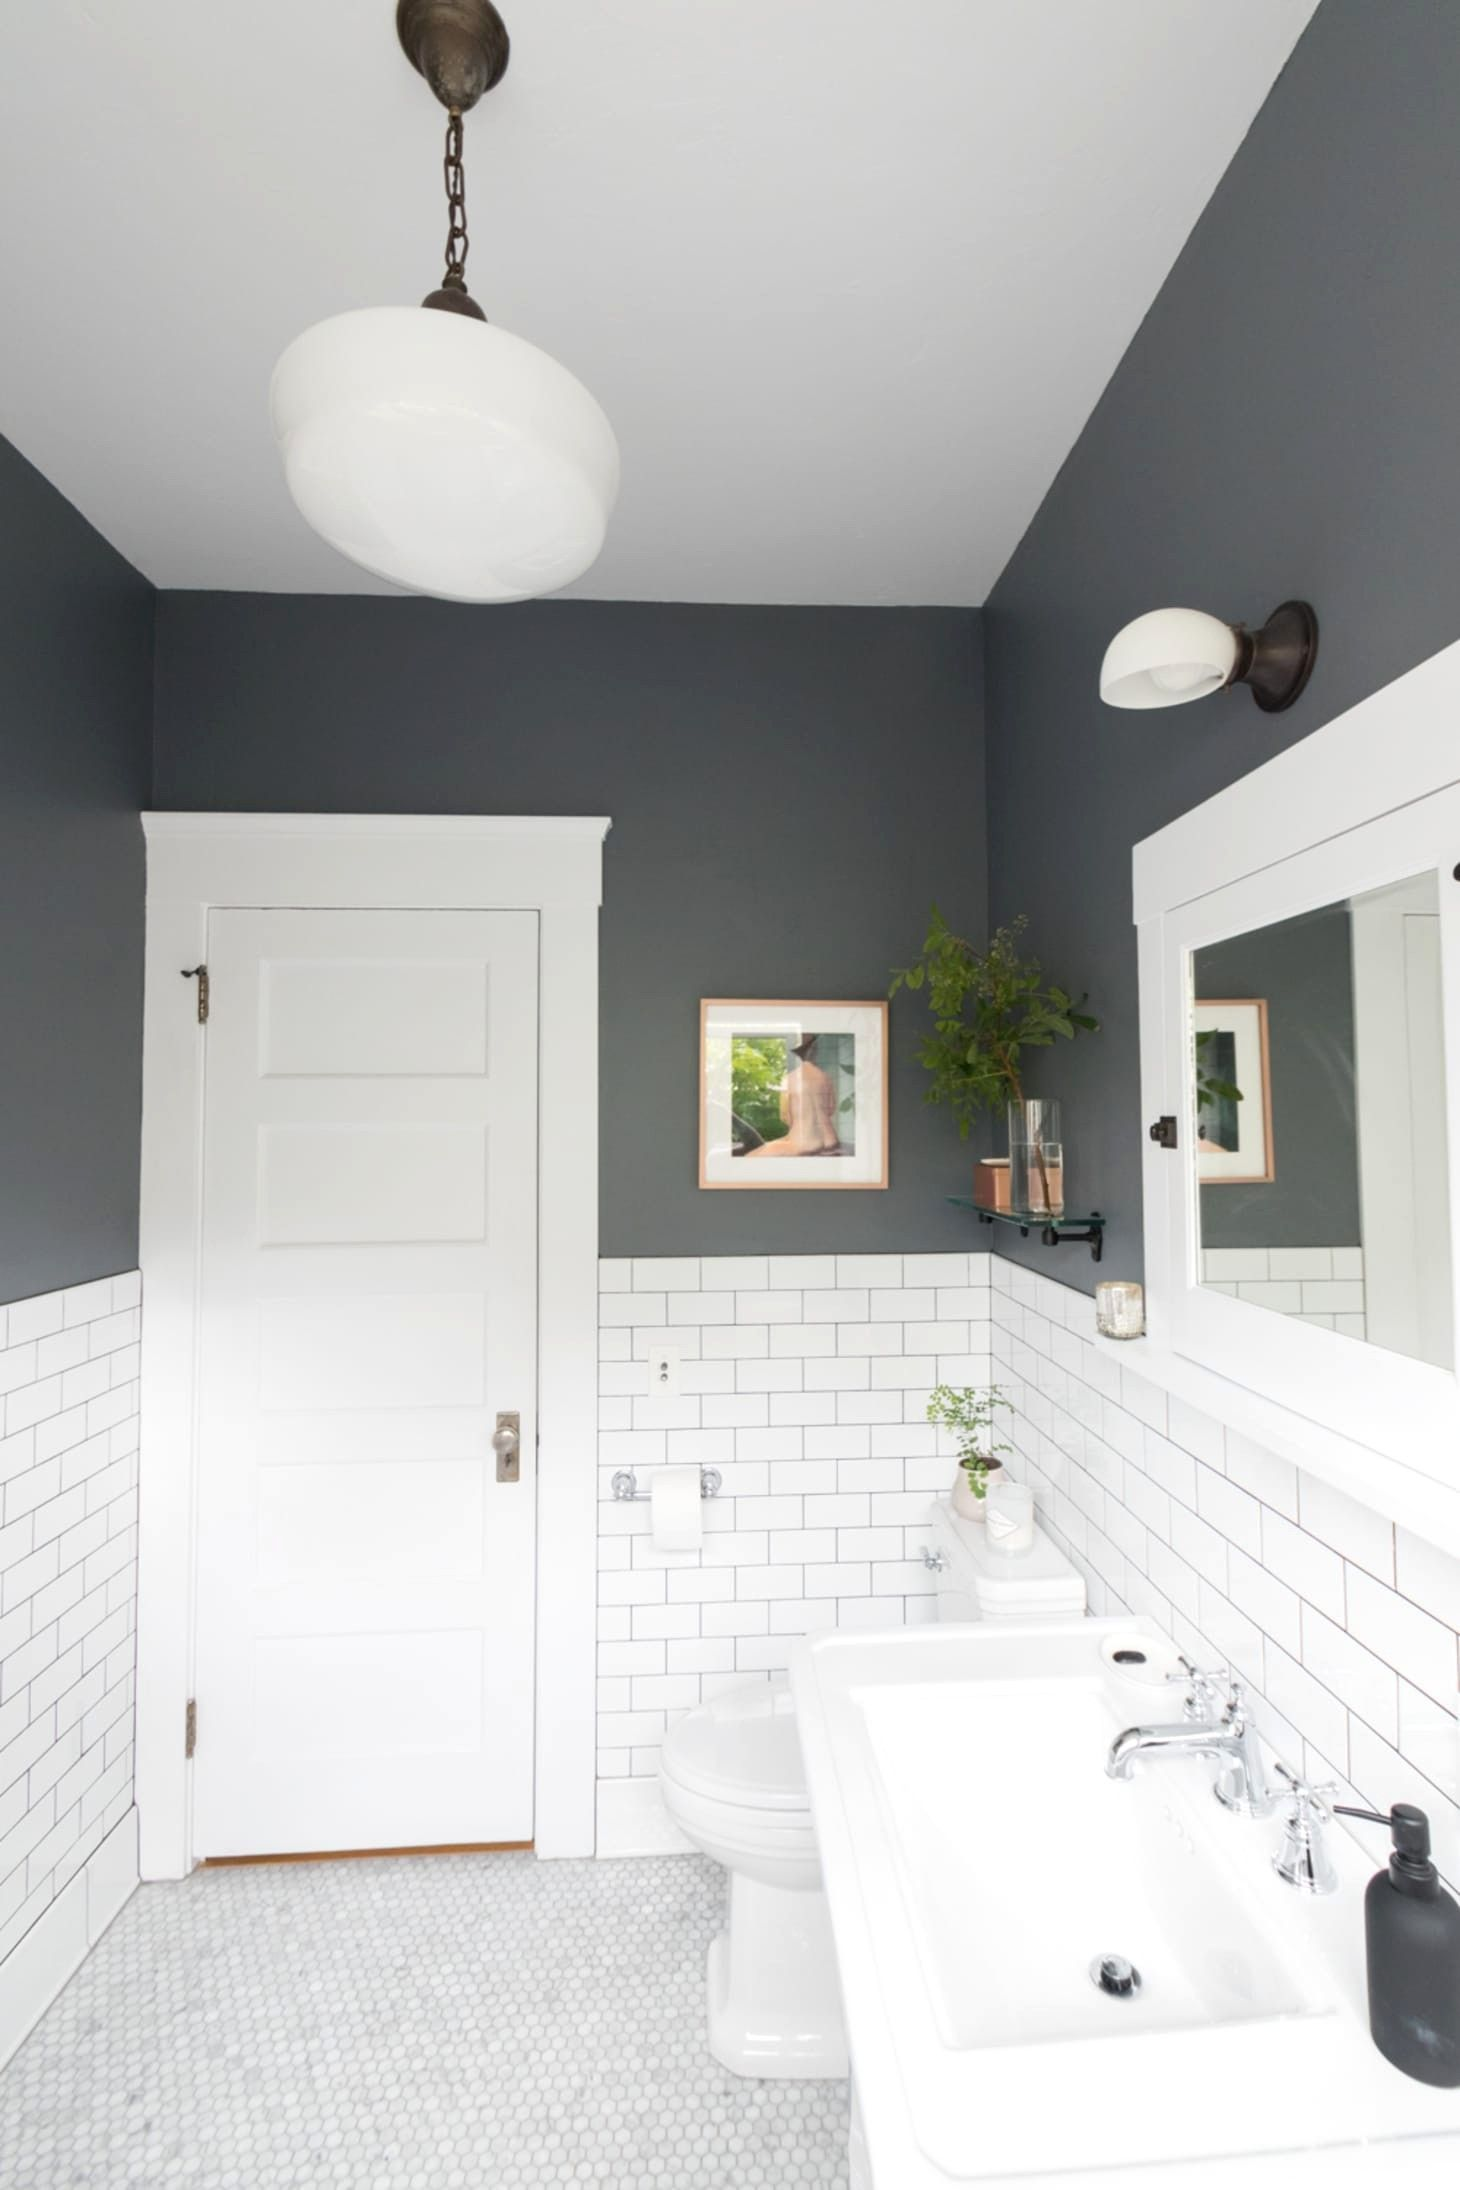 Best Bathroom Paint Color For Skin Bathroom Color Paint Skin In 2020 Small Bathroom Makeover Half Bathroom Remodel Small Bathroom Remodel